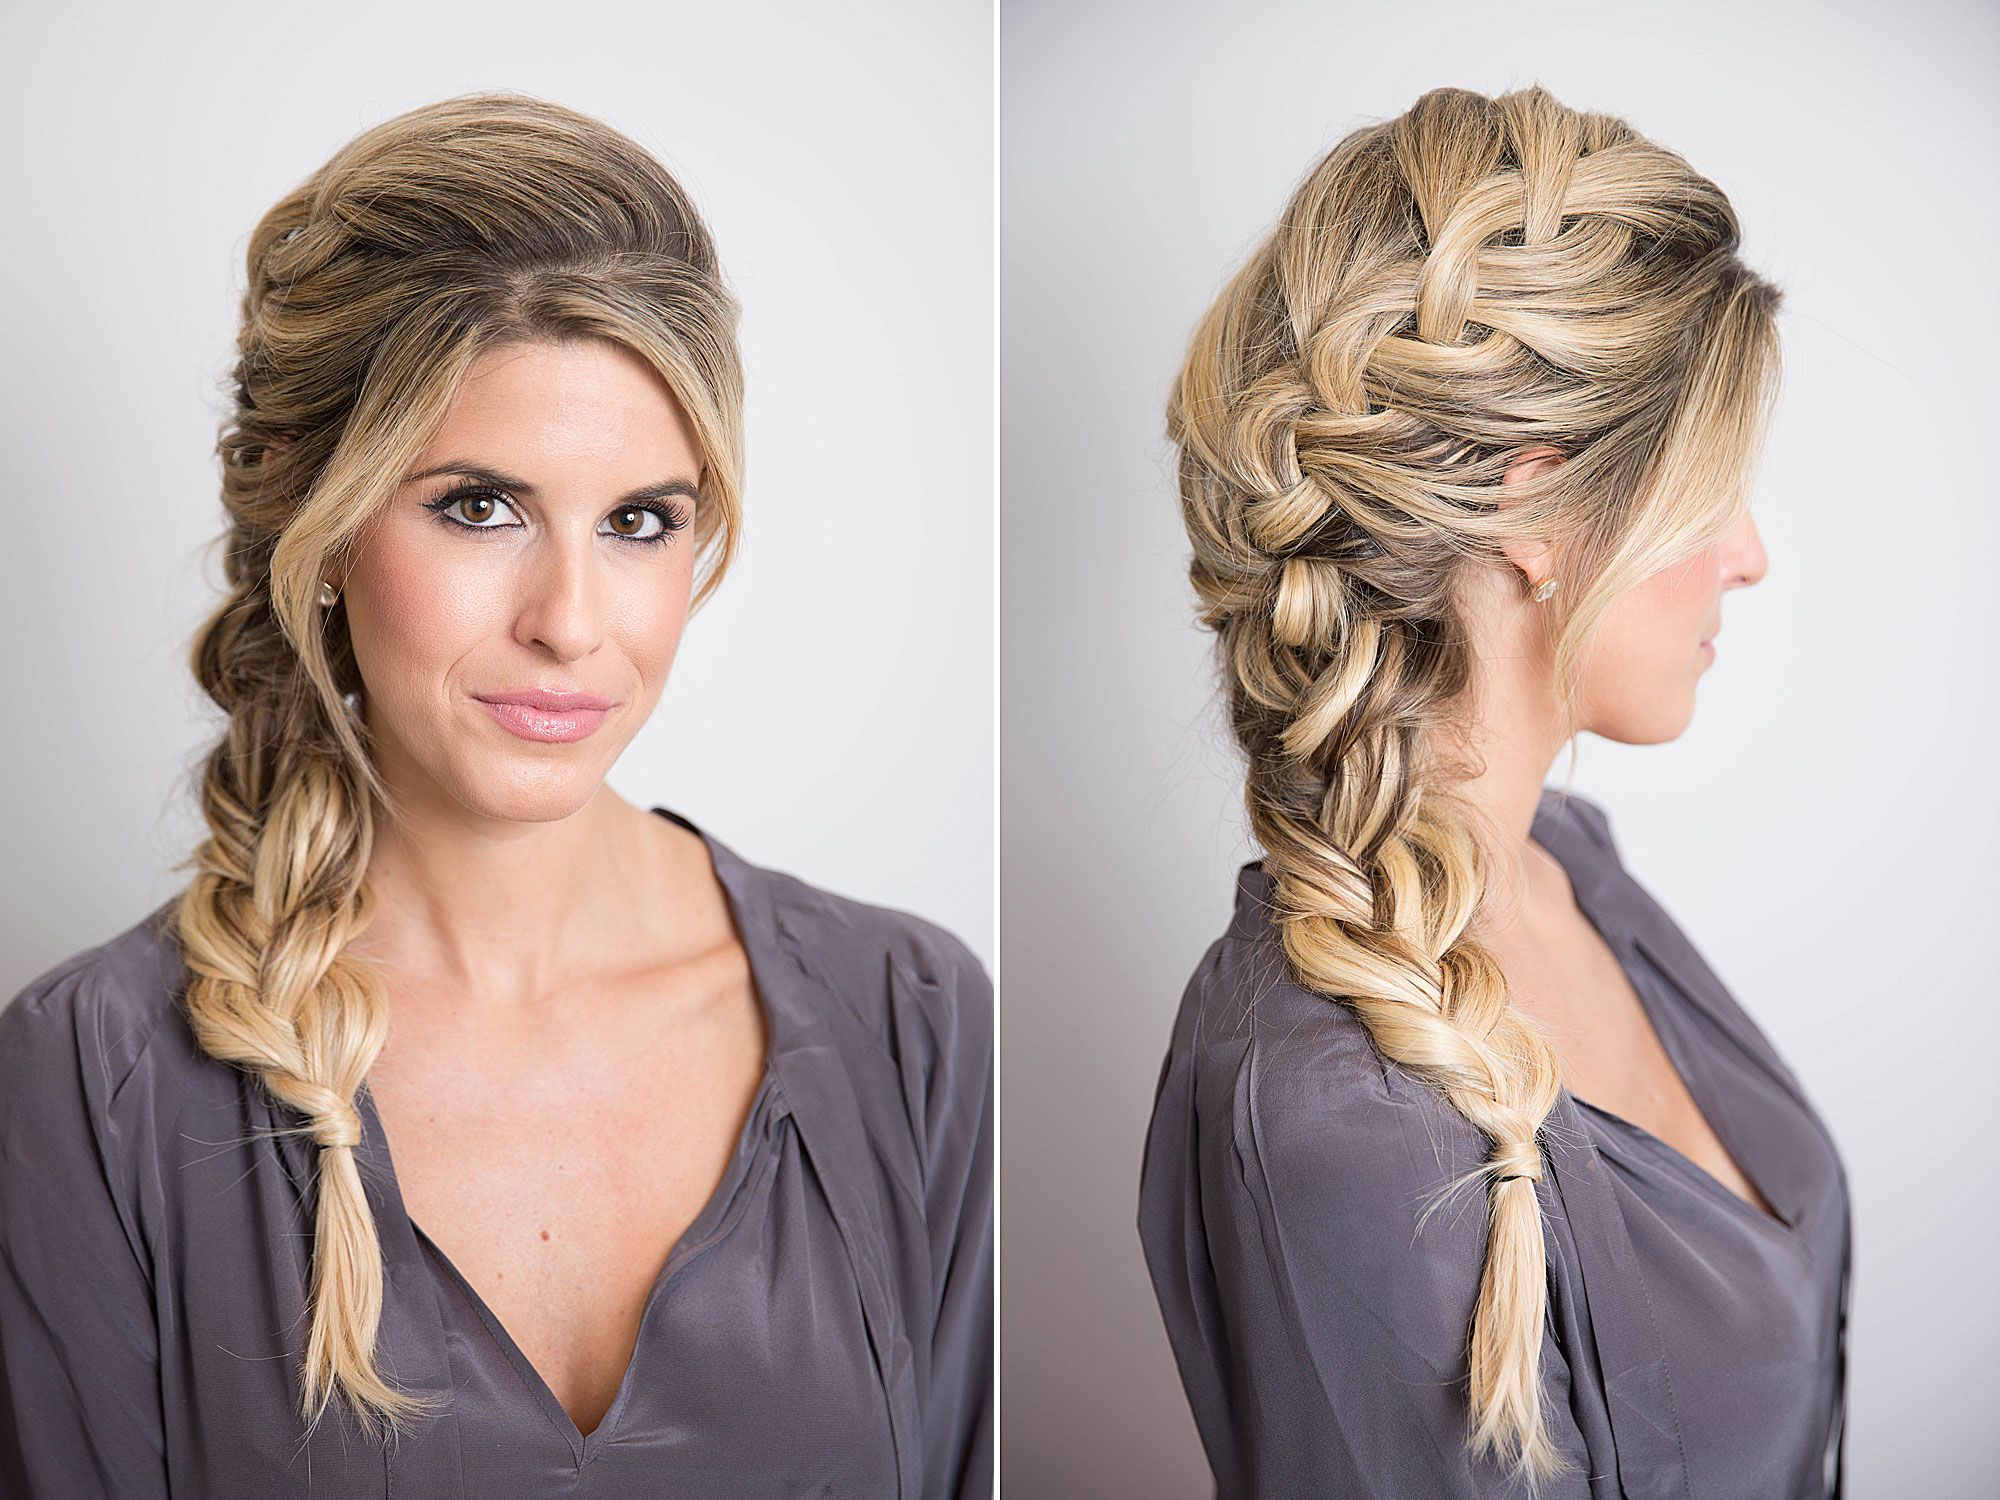 Favorite Ponytail Fishtail Braided Hairstyles Pertaining To 17 Braided Hairstyles With Gifs – How To Do Every Type Of Braid (View 8 of 20)